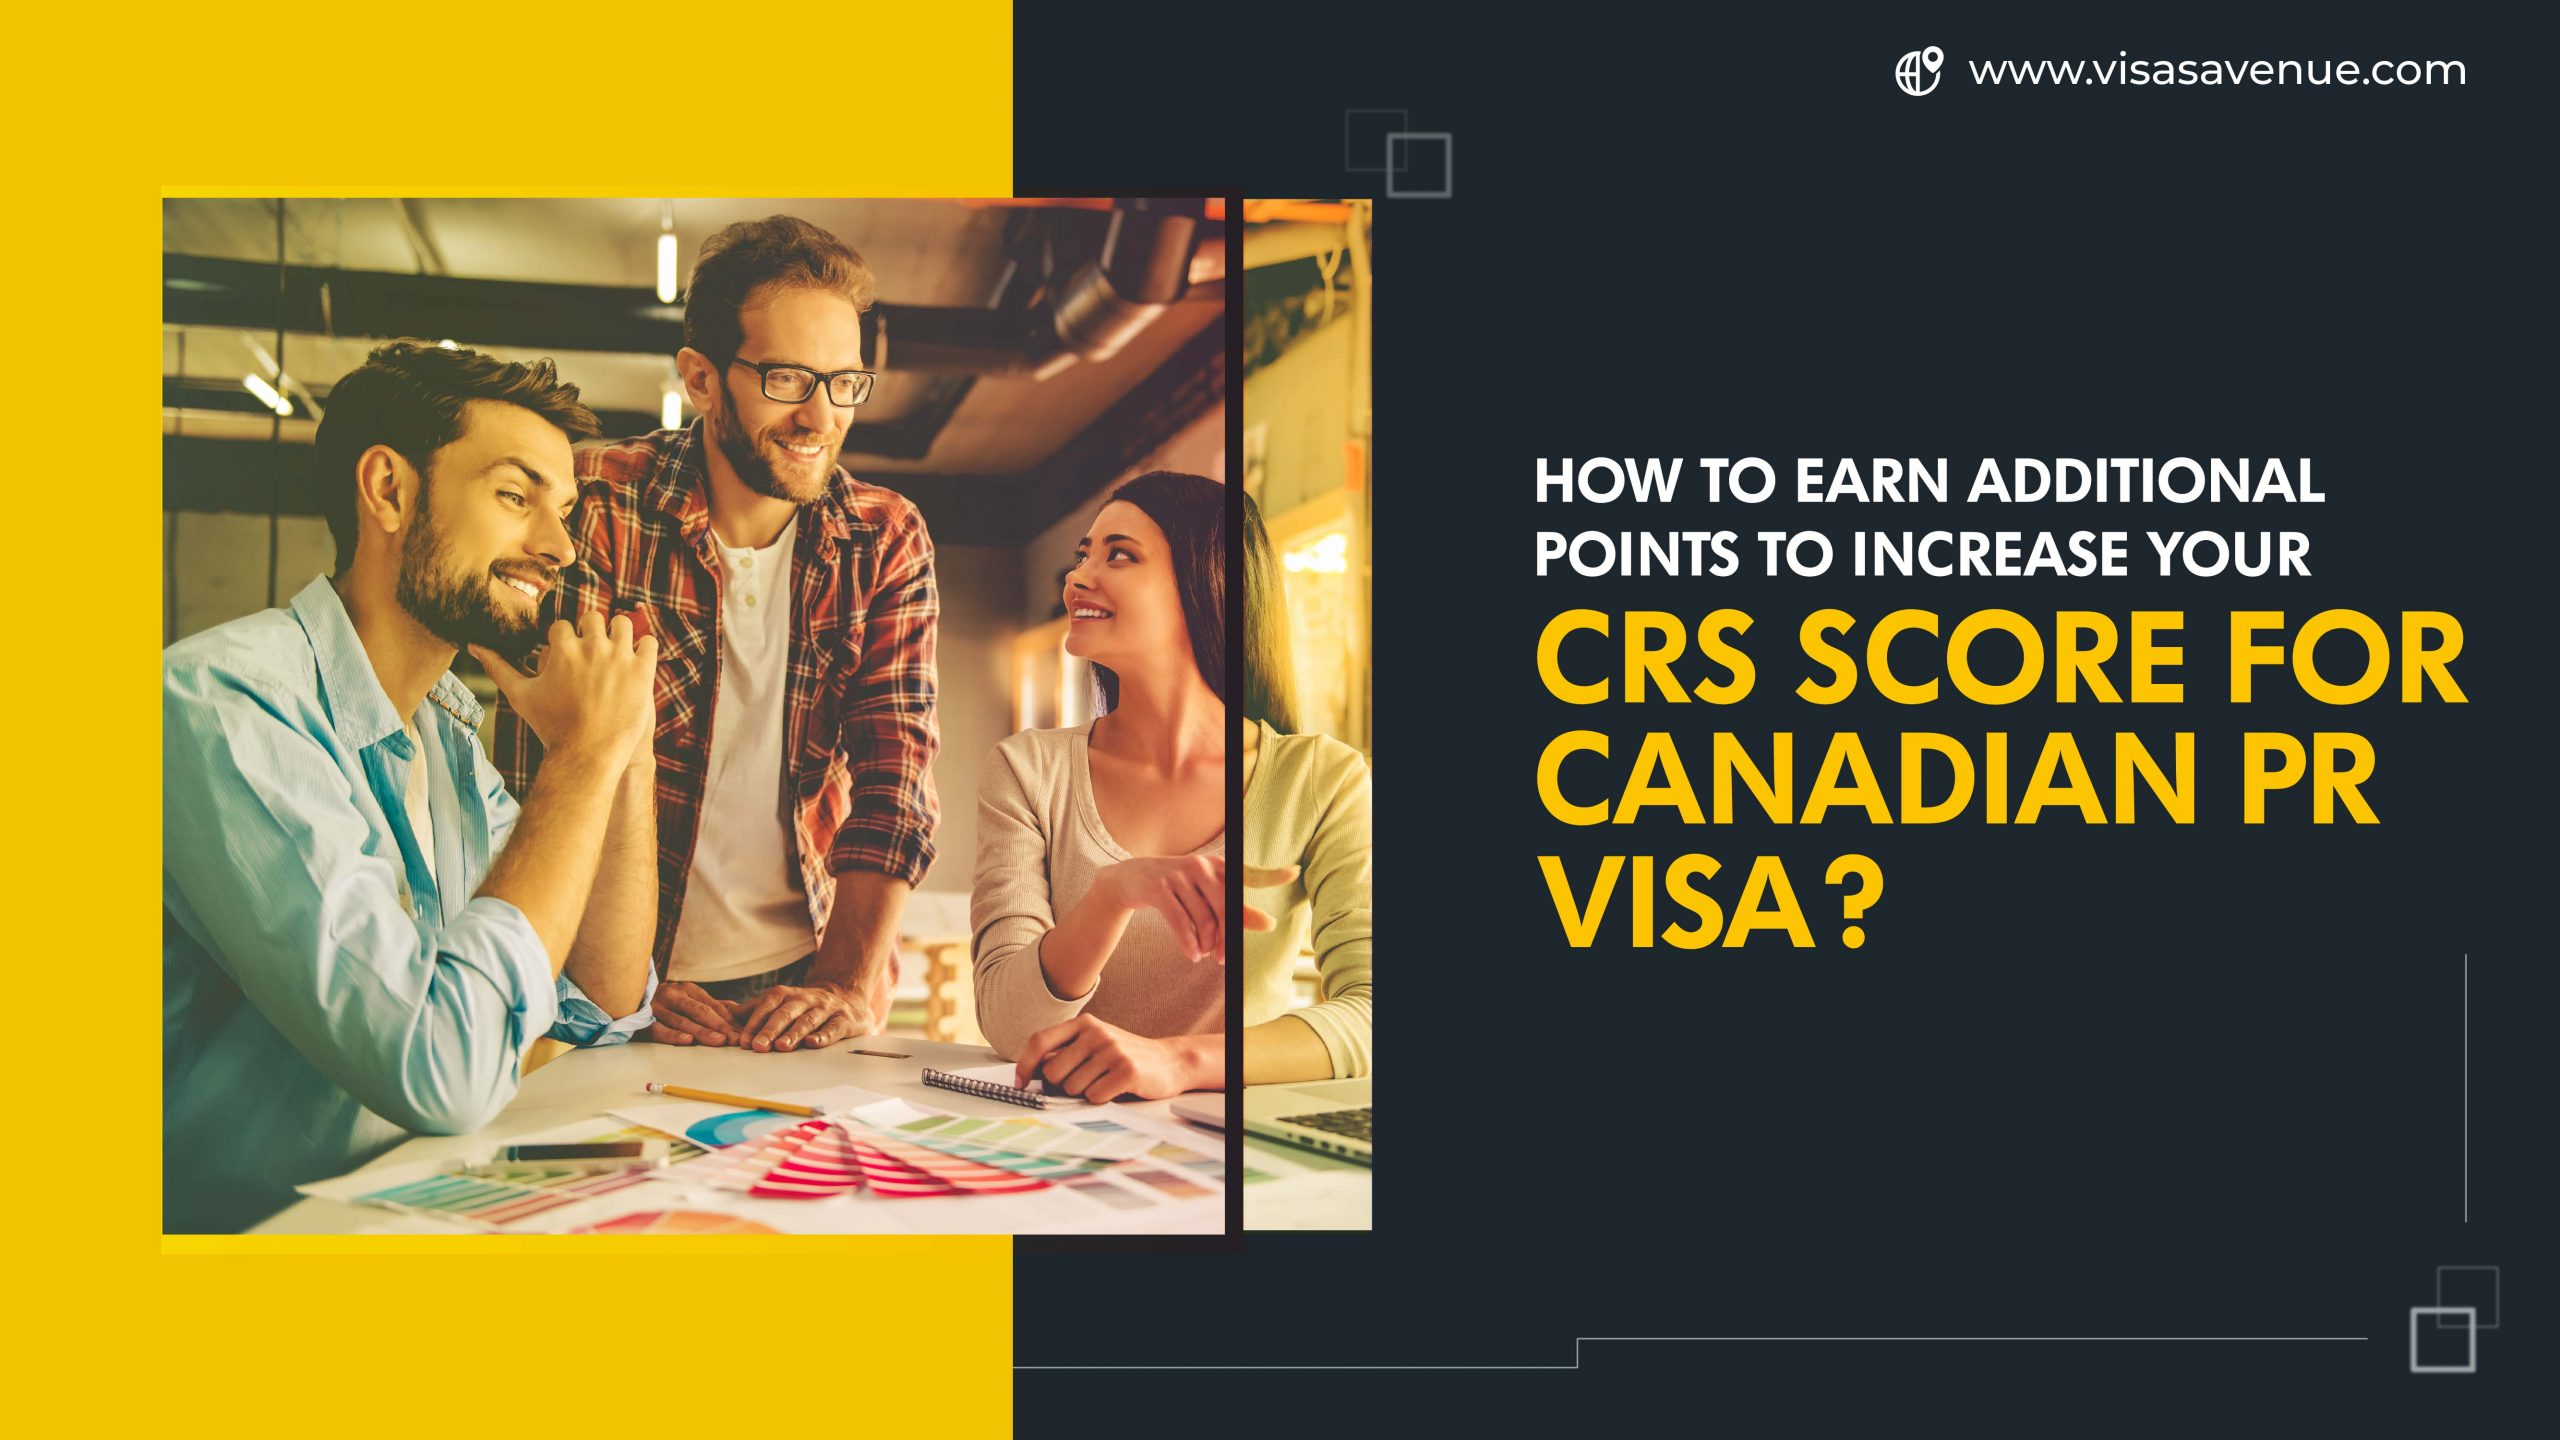 How to Earn Additional points to increase your CRS score for Canadian PR visa